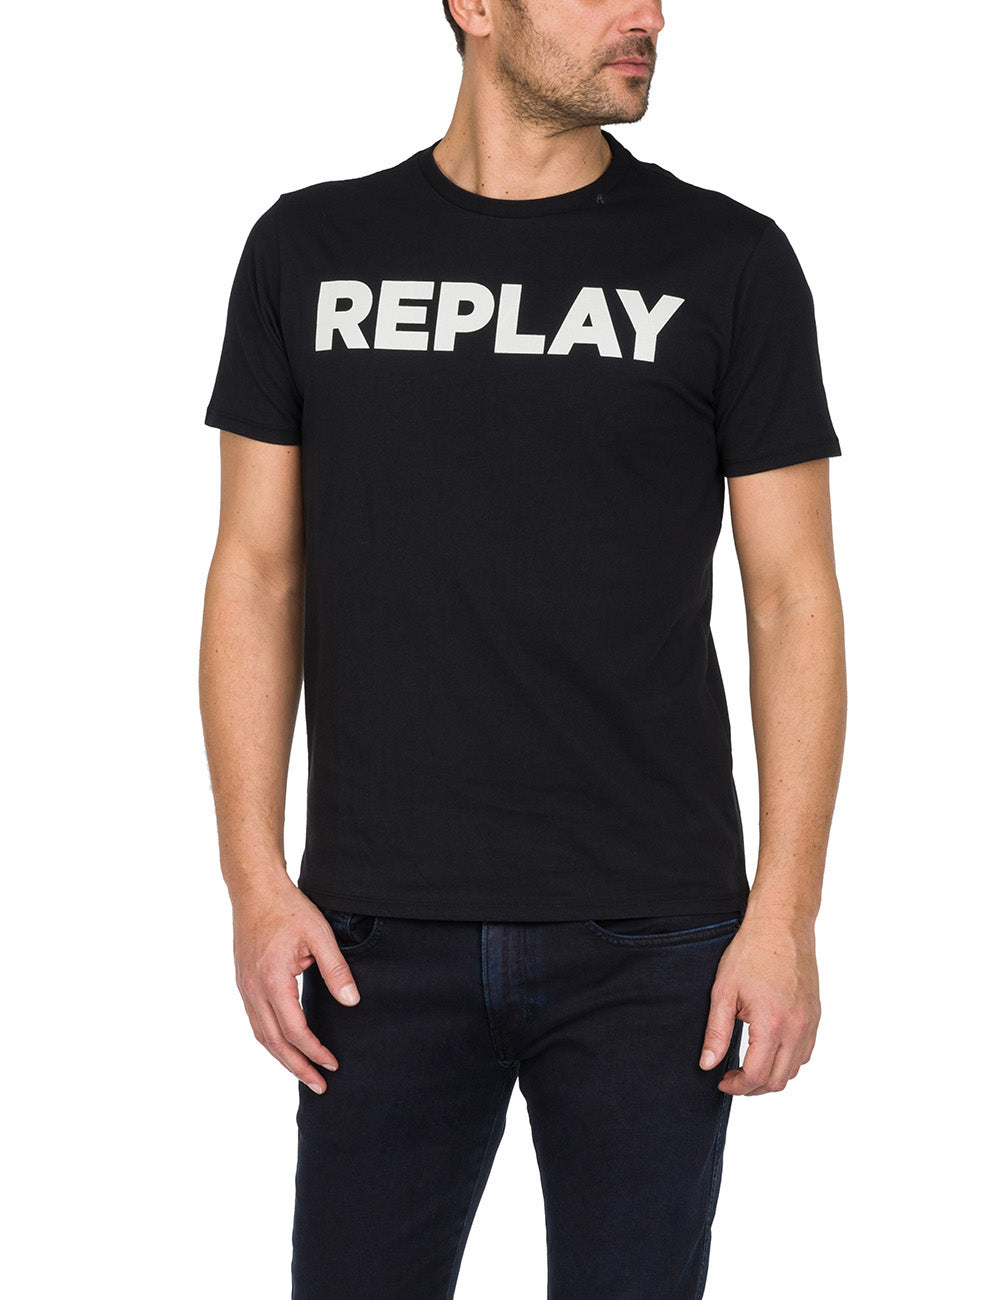 T-SHIRT TEXT REPLAY